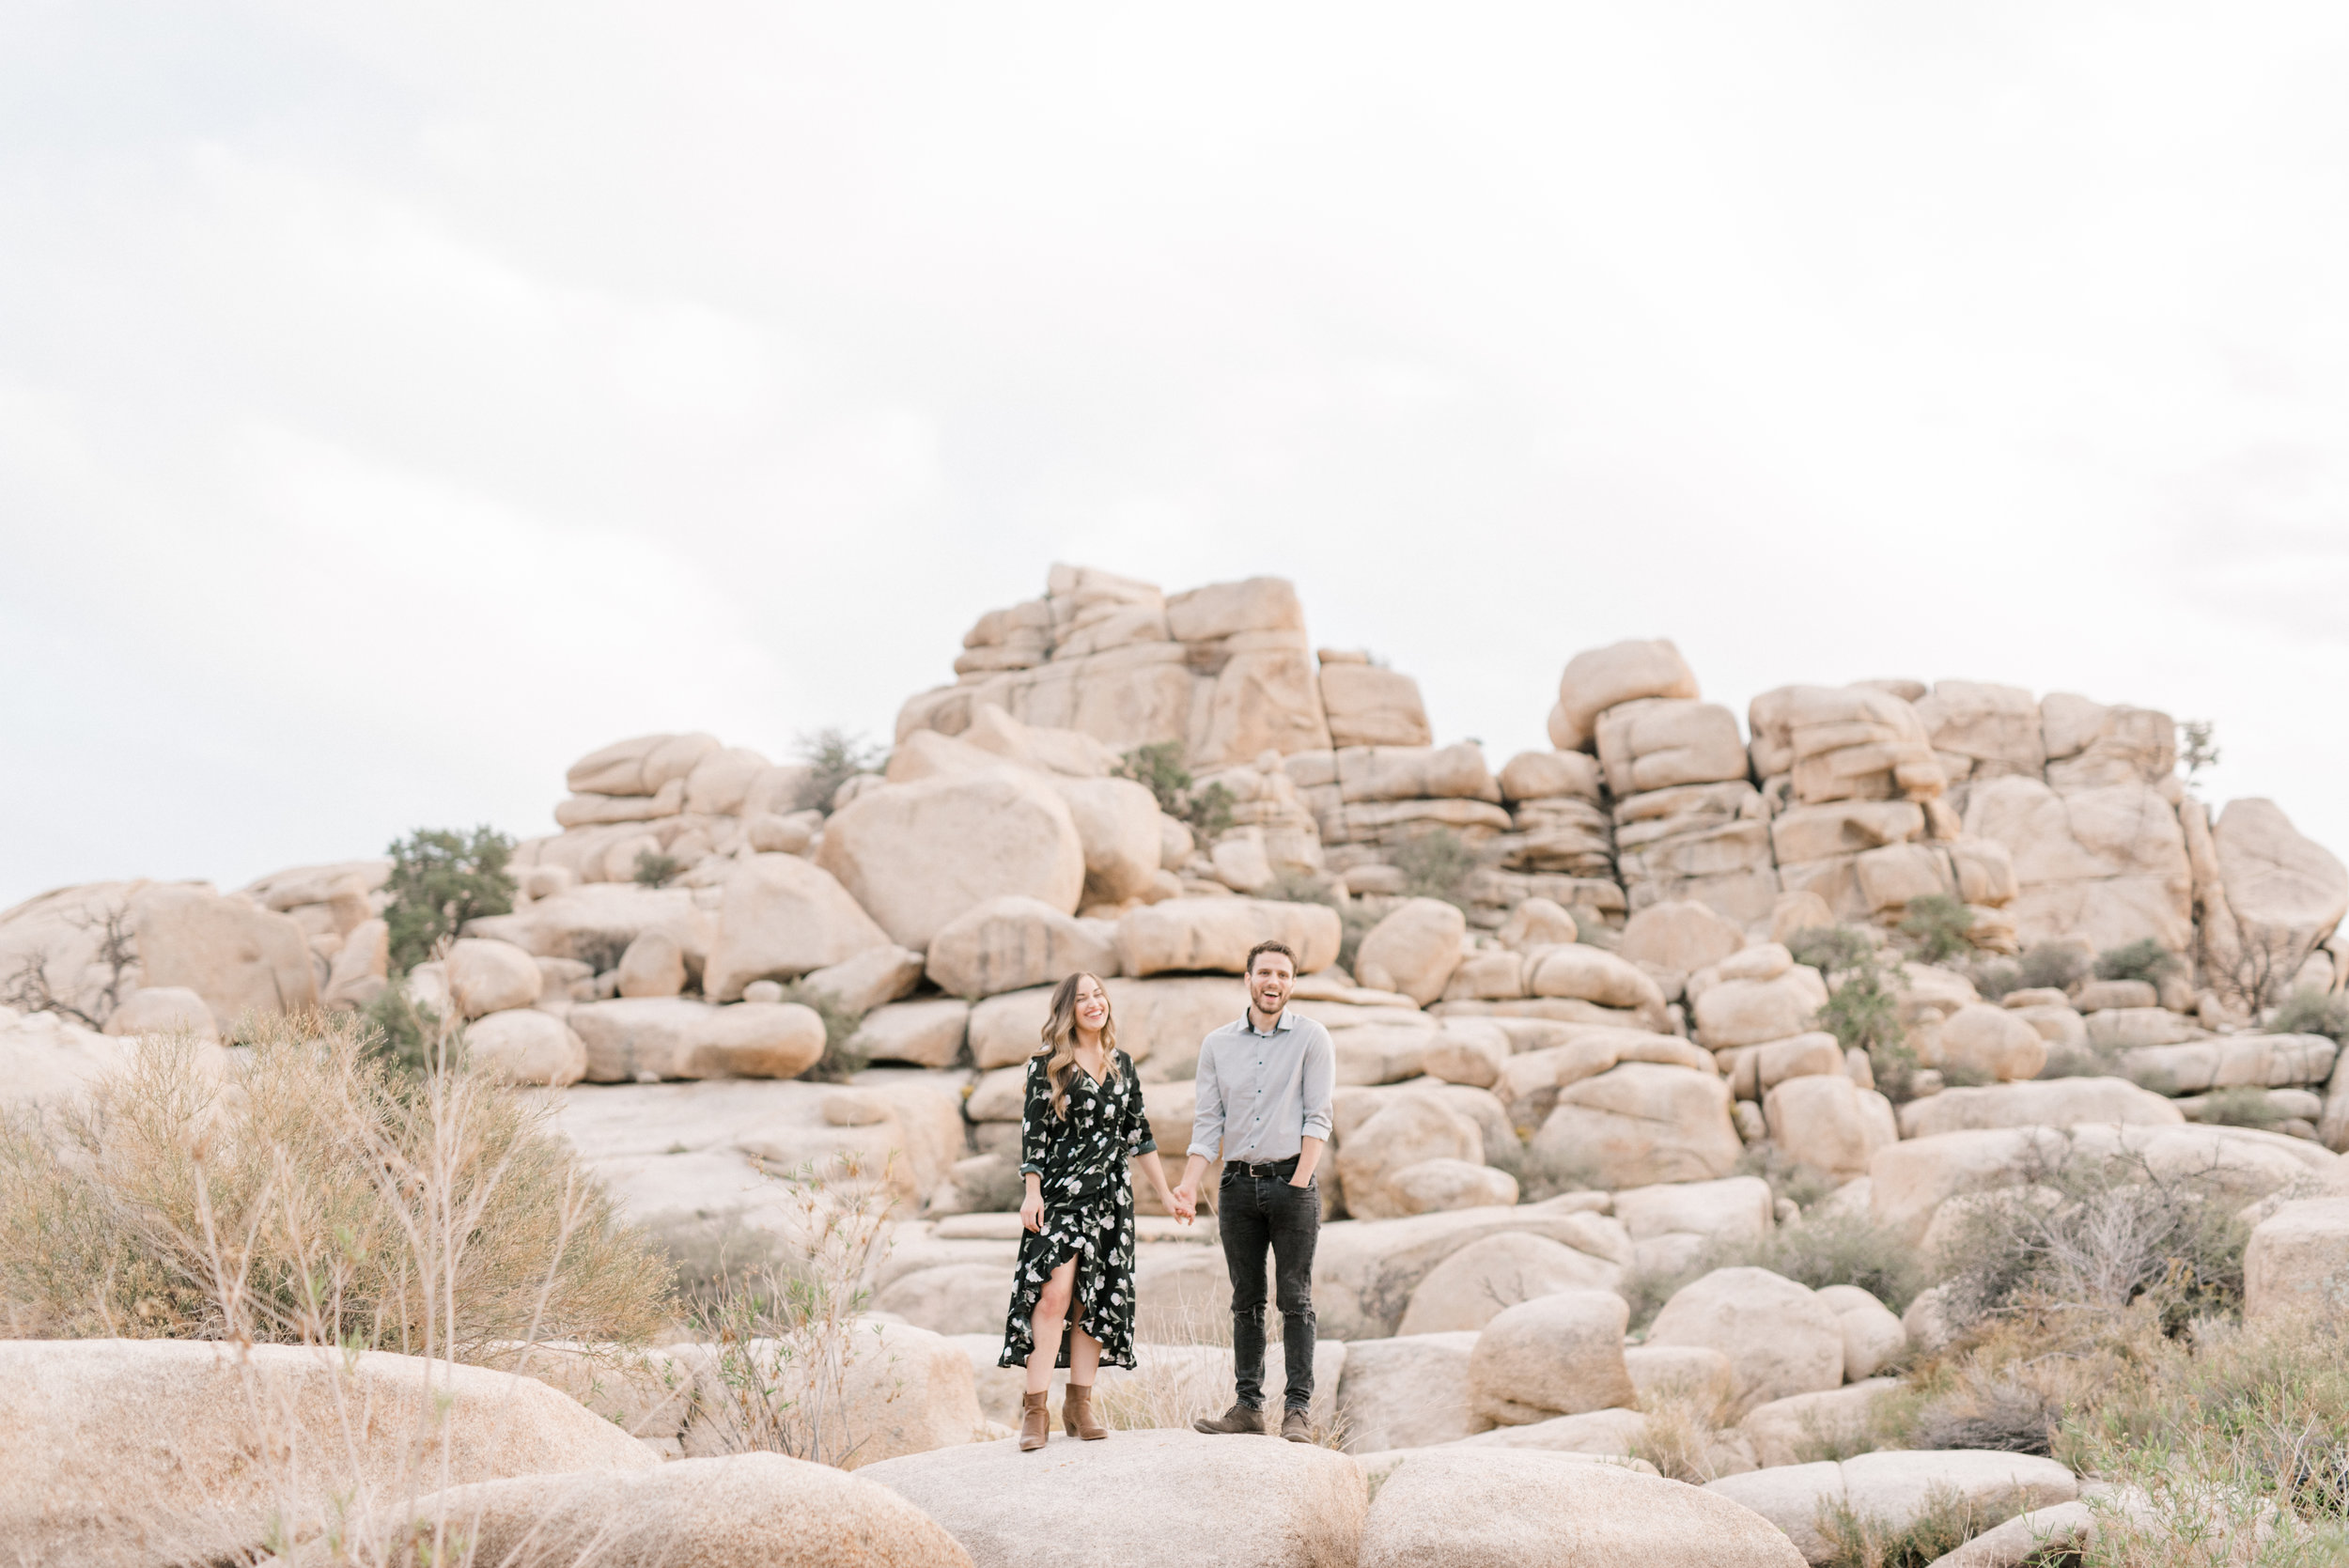 We adore the fun atmosphere of this free-spirited desert engagement session in Joshue Tree